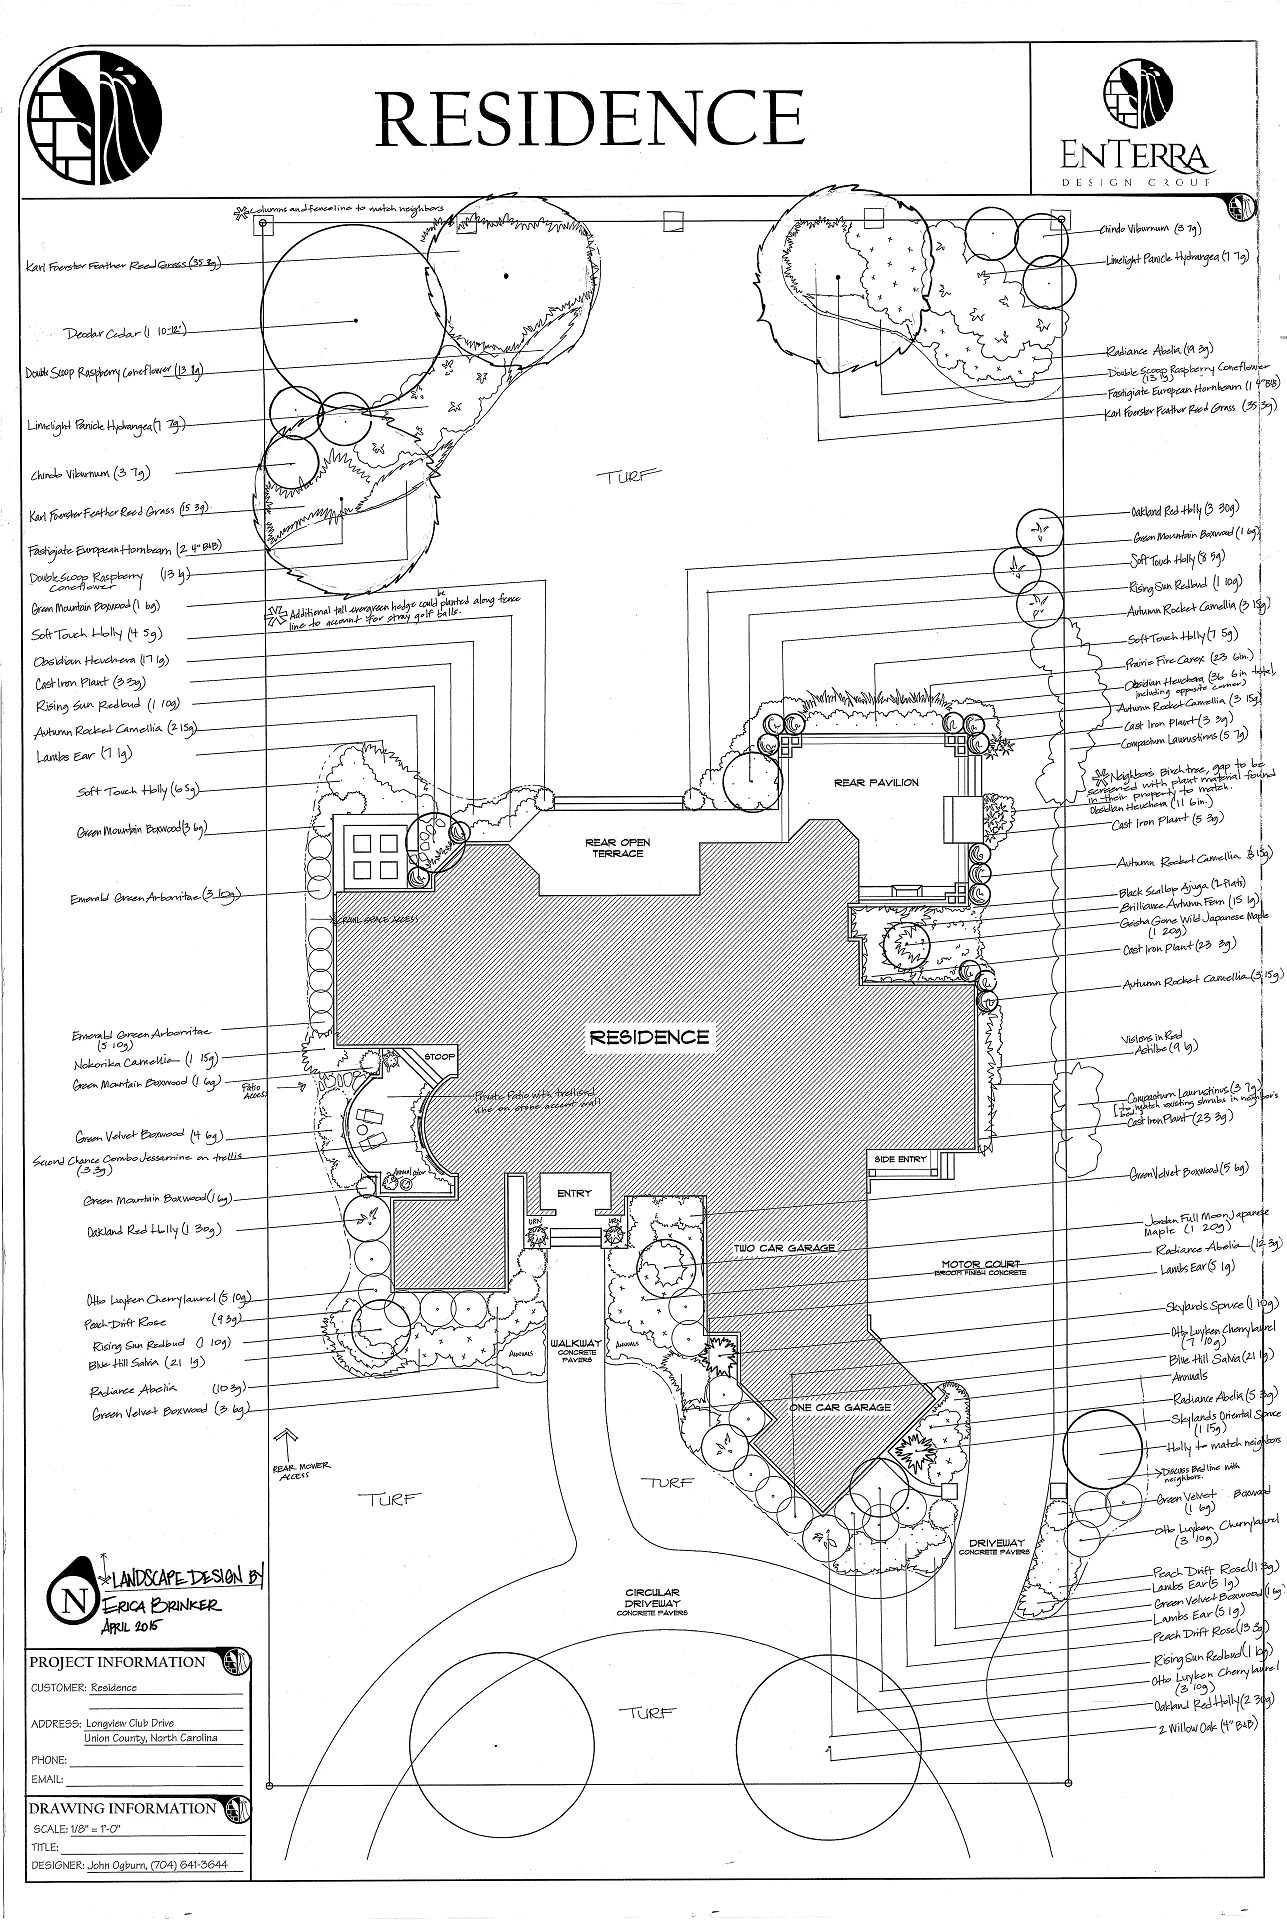 EnTerra Design - Landscape Plan